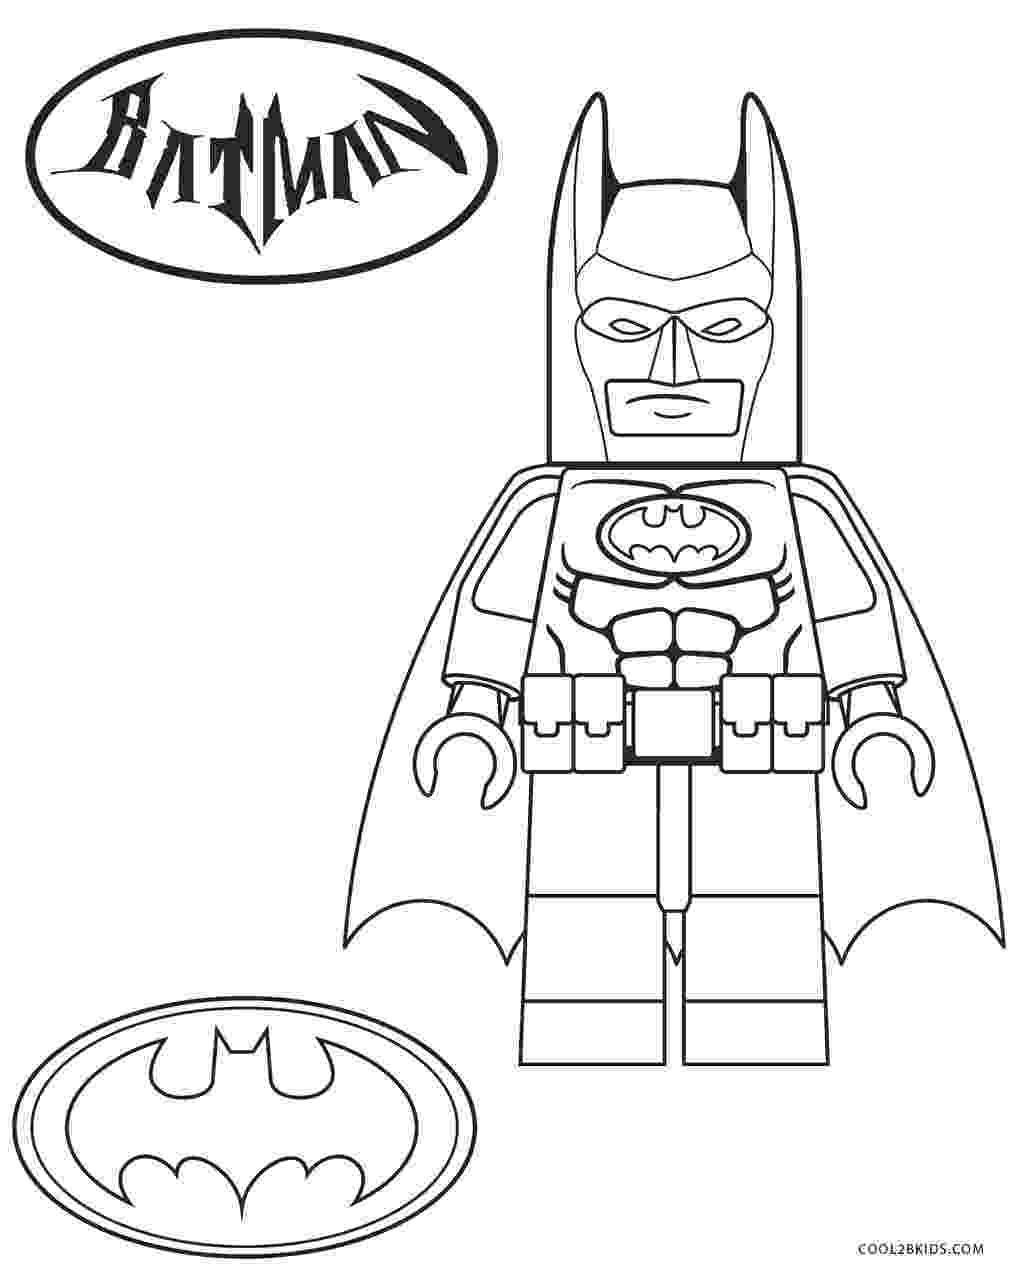 coloring pages of legos free printable lego coloring pages for kids cool2bkids legos of pages coloring 1 1